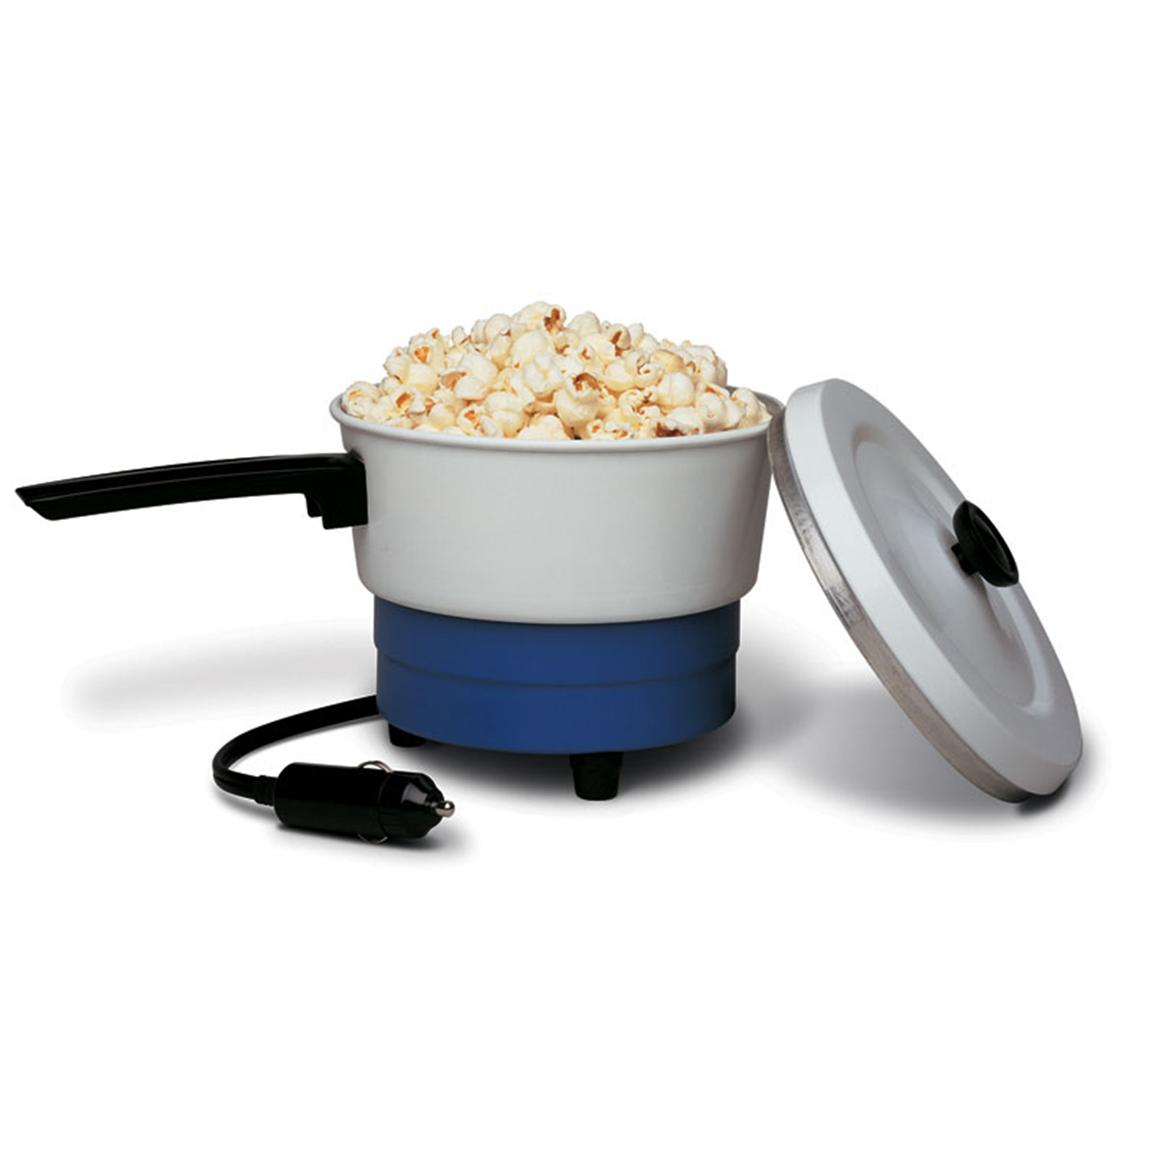 RoadPro 12-Volt Portable Saucepan and Popcorn Popper